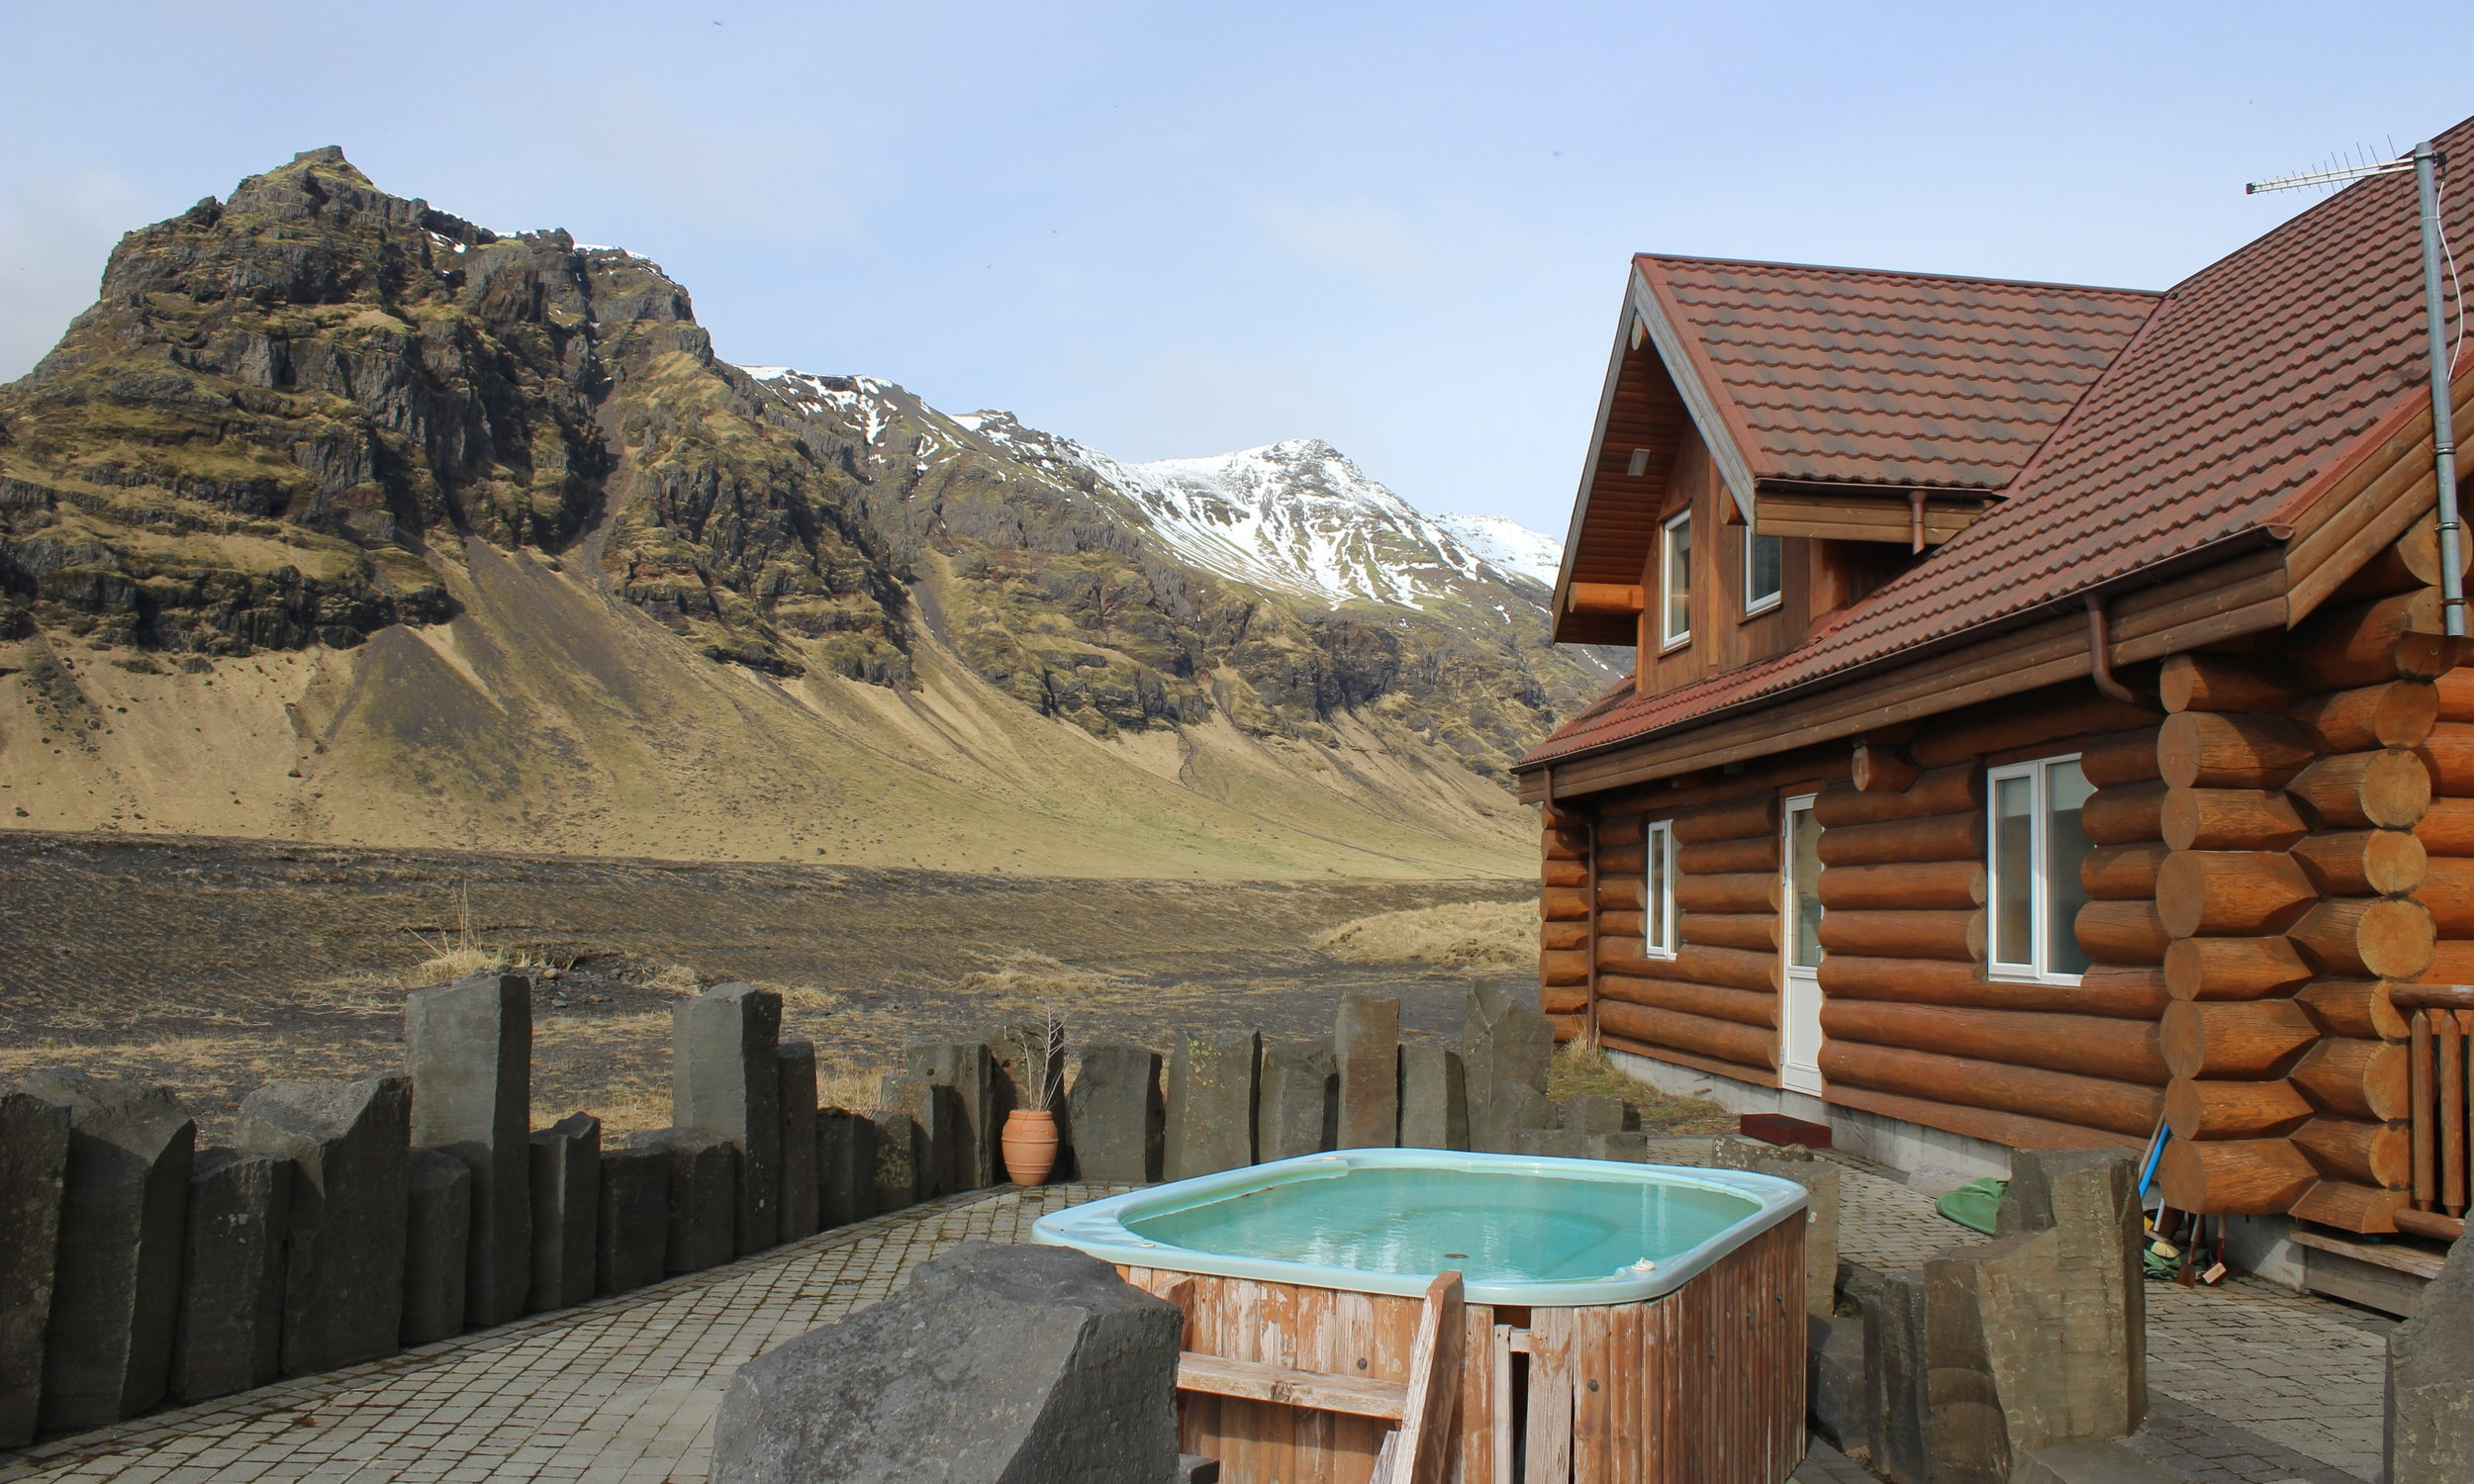 Our beautiful log cabin with accompanying hot tub